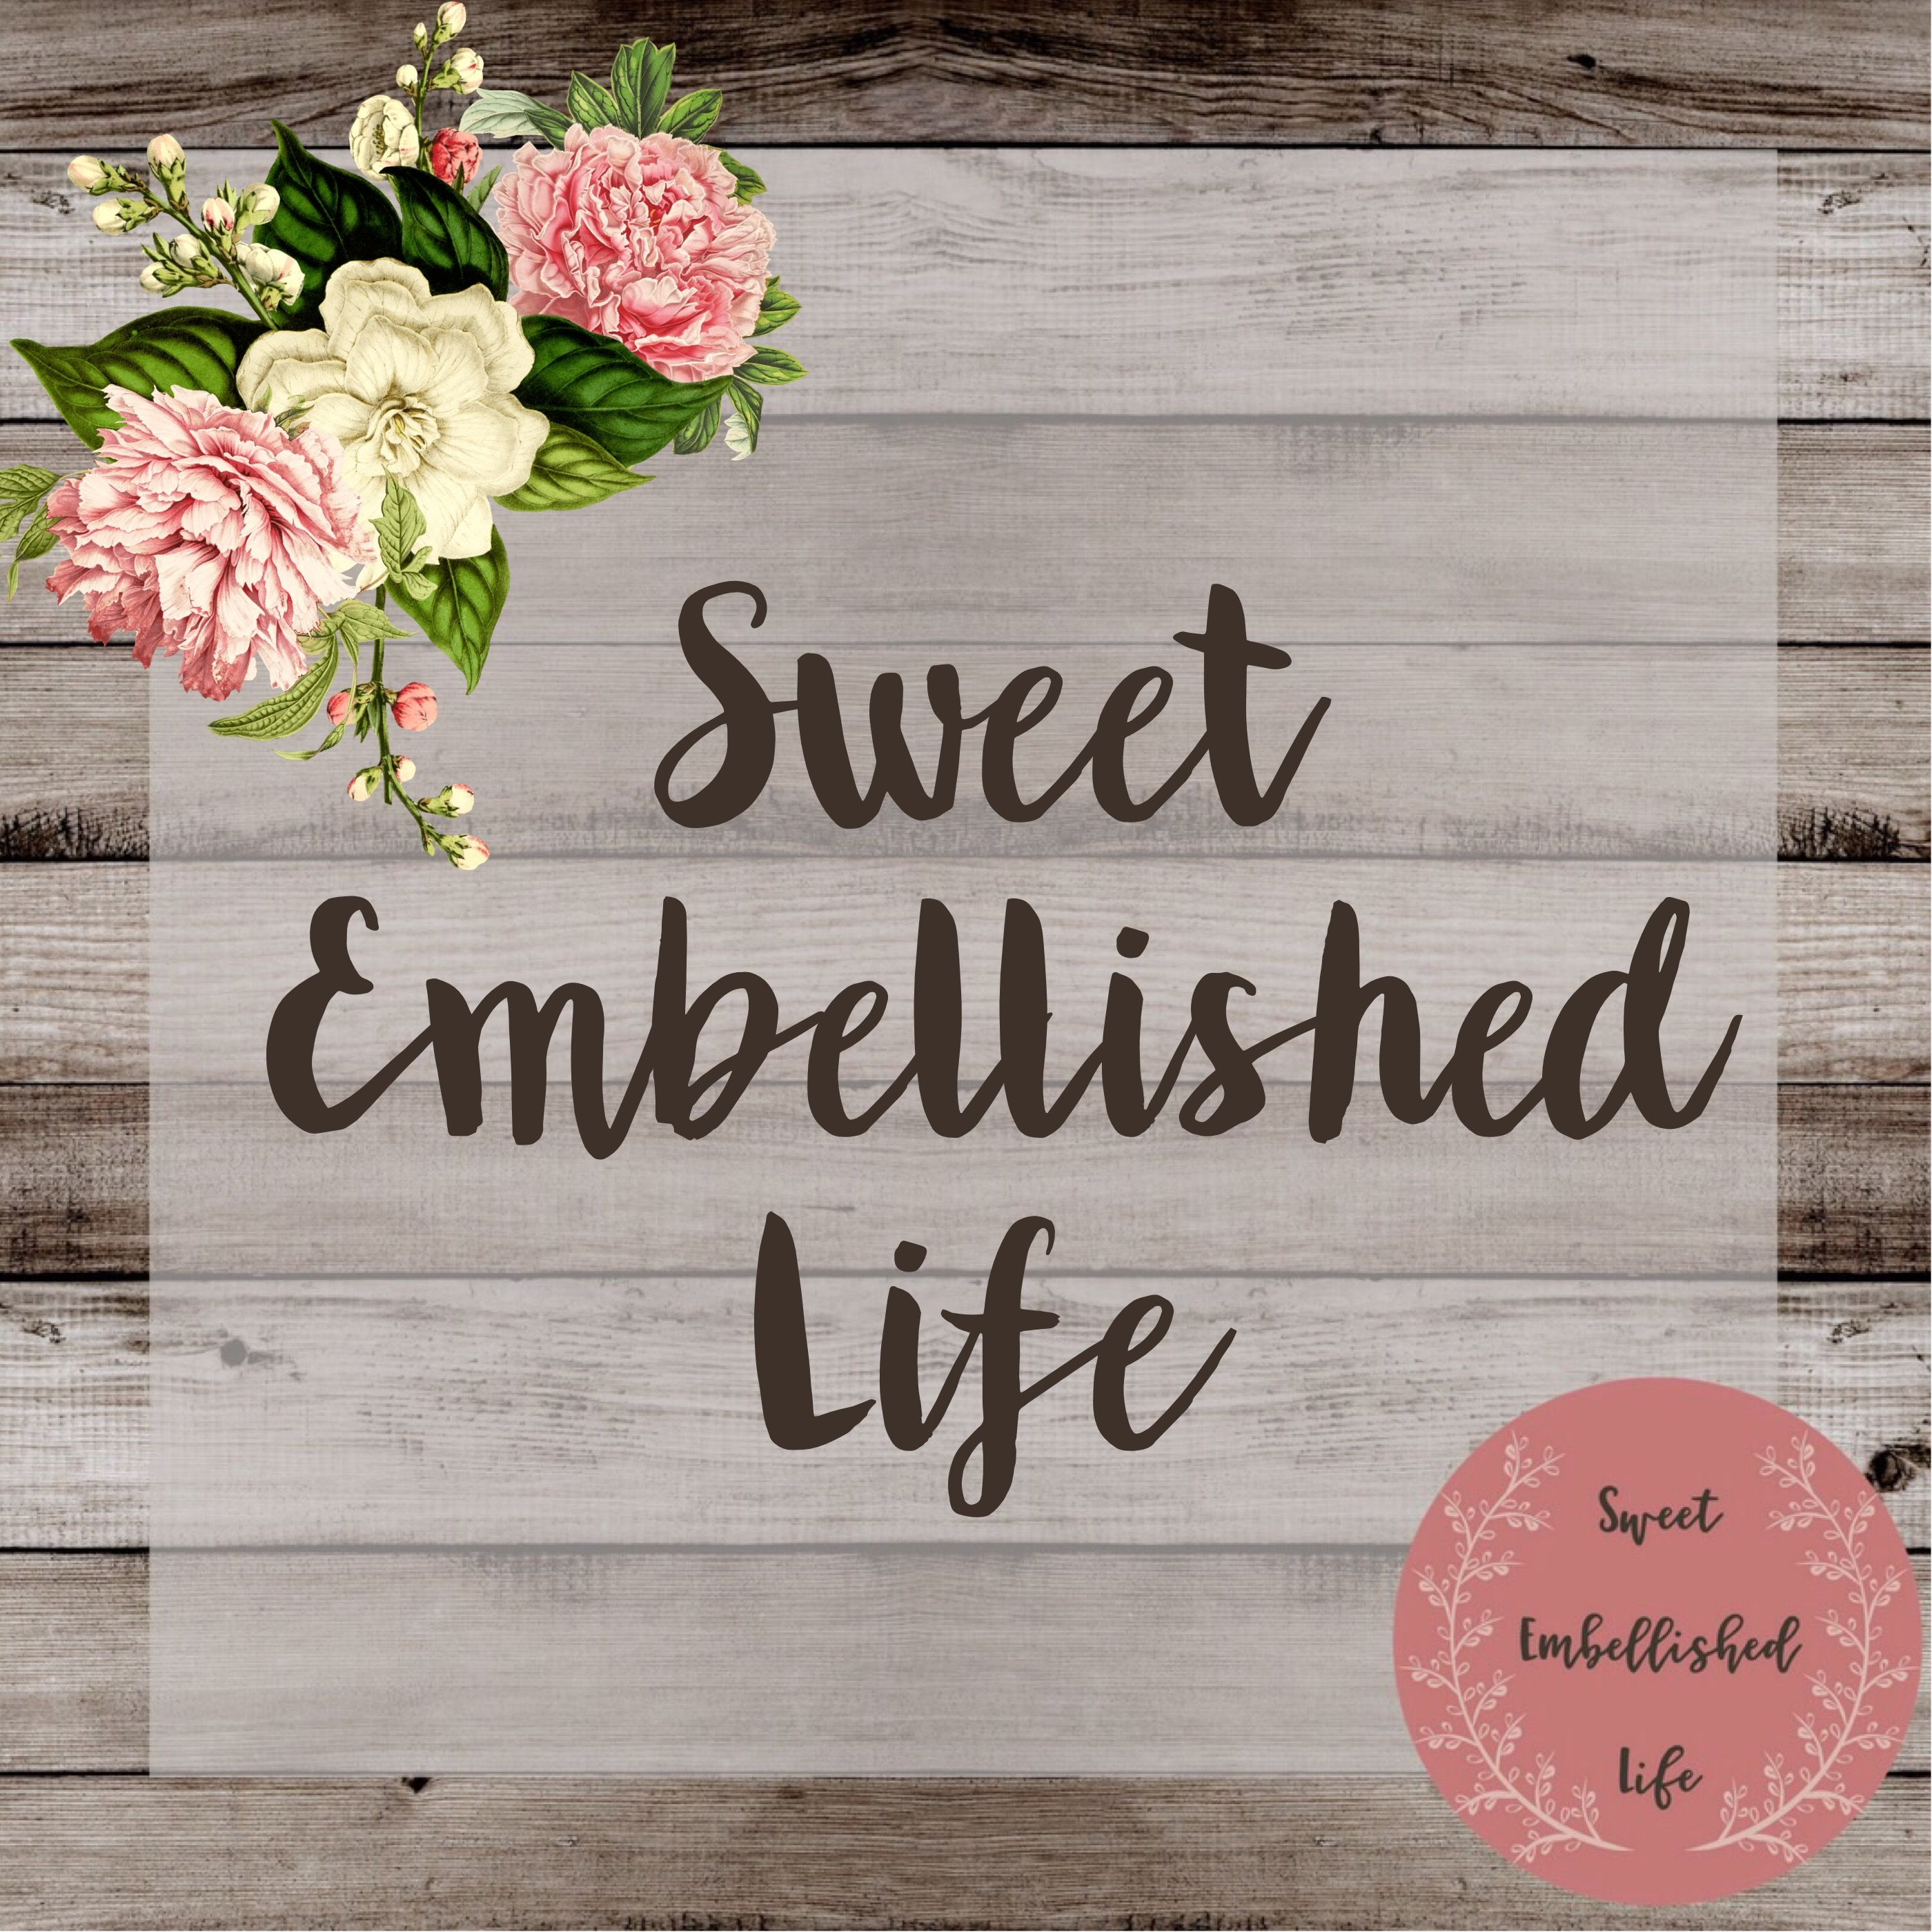 Sweetly Embellished - Your Life Organized Simply & Sweetly